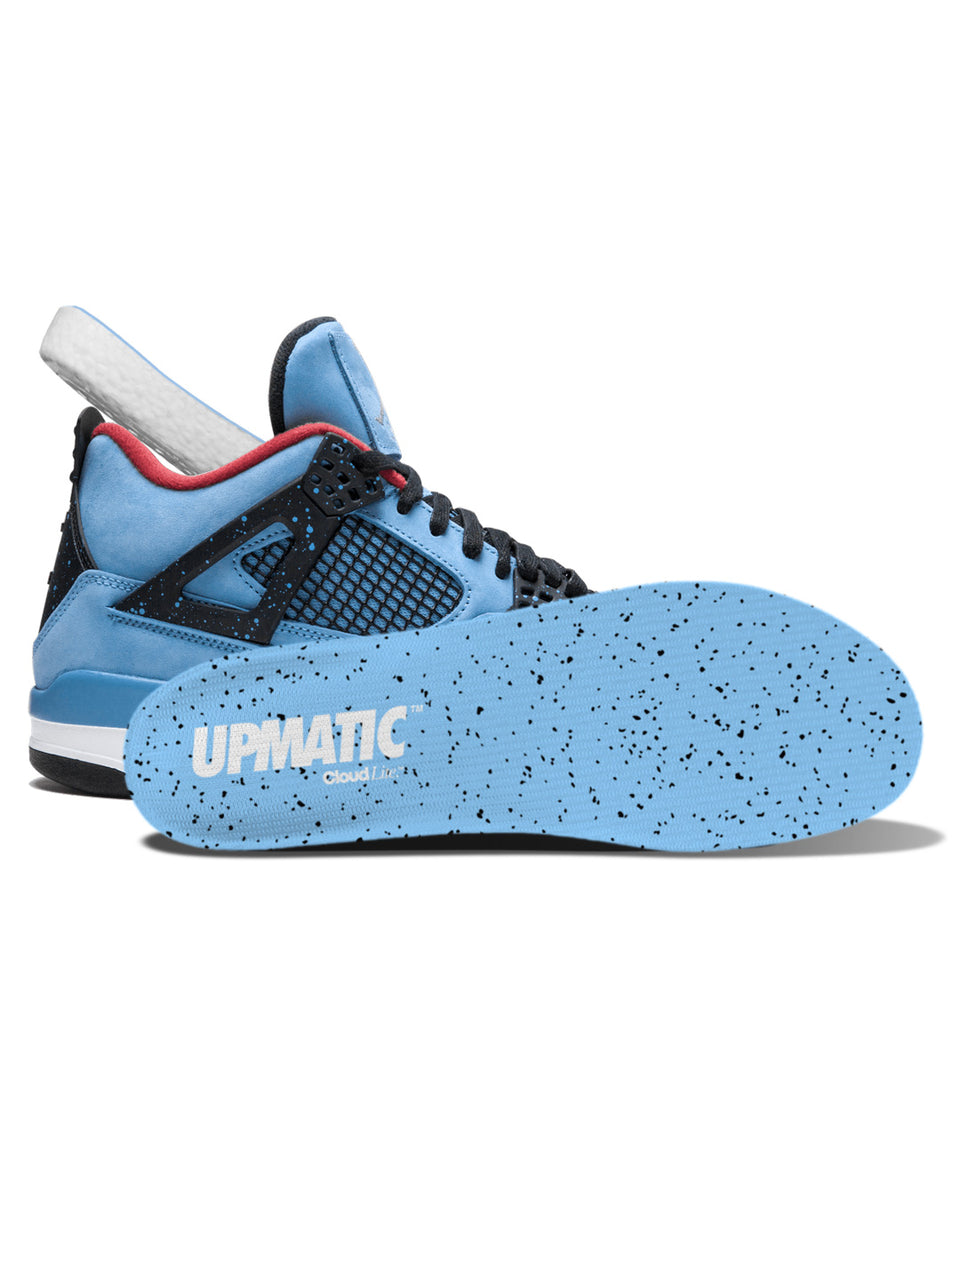 UPMATIC Cloudlite Supercharged Insoles 1989 Blue Splatter Limited Edition